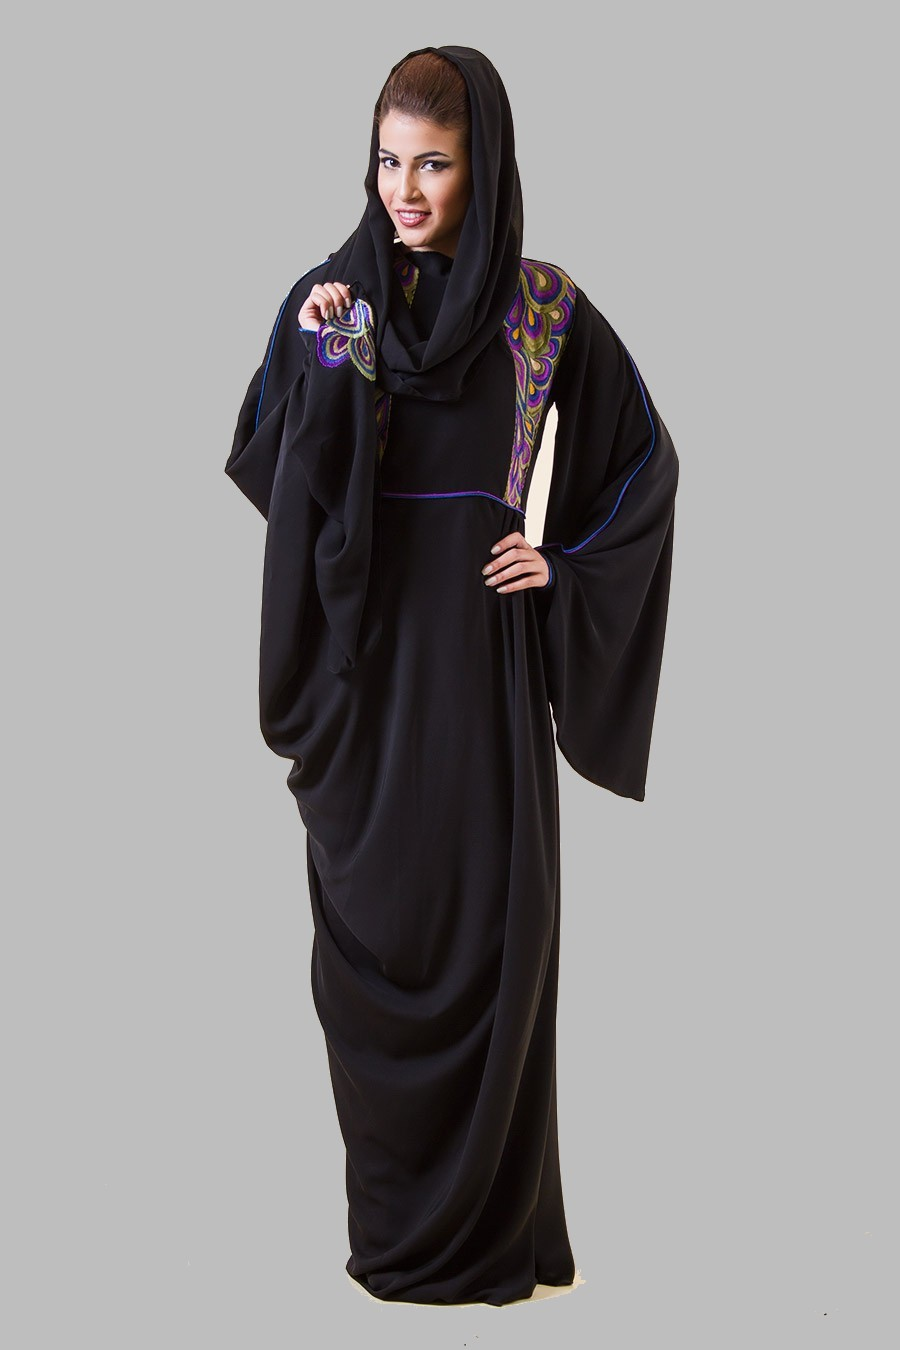 2017 fashion abaya - Abaya Latest Muslim Pictures To Pin On Pinterest Tattooskid